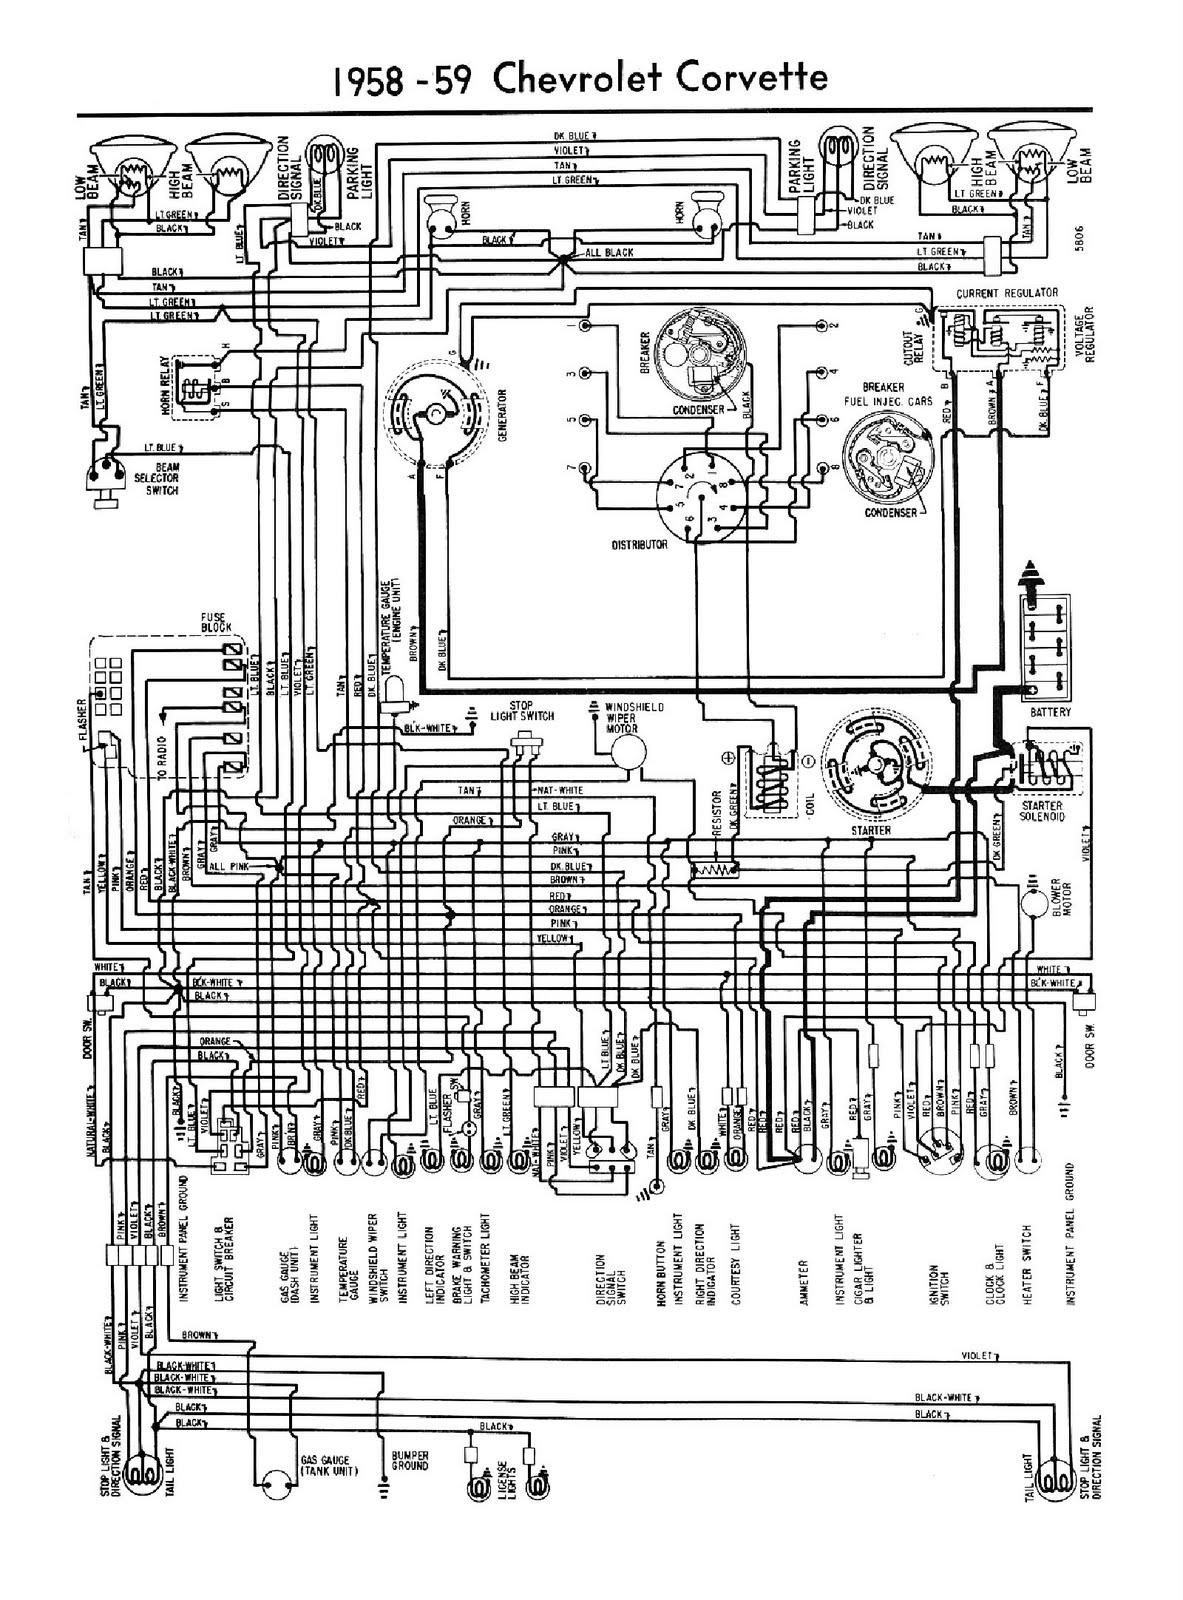 1959 Gmc Wiring Diagram Will Be A Thing Pickup Trailer Diagrams Free Auto 1958 Chevrolet Corvette 1978 Truck